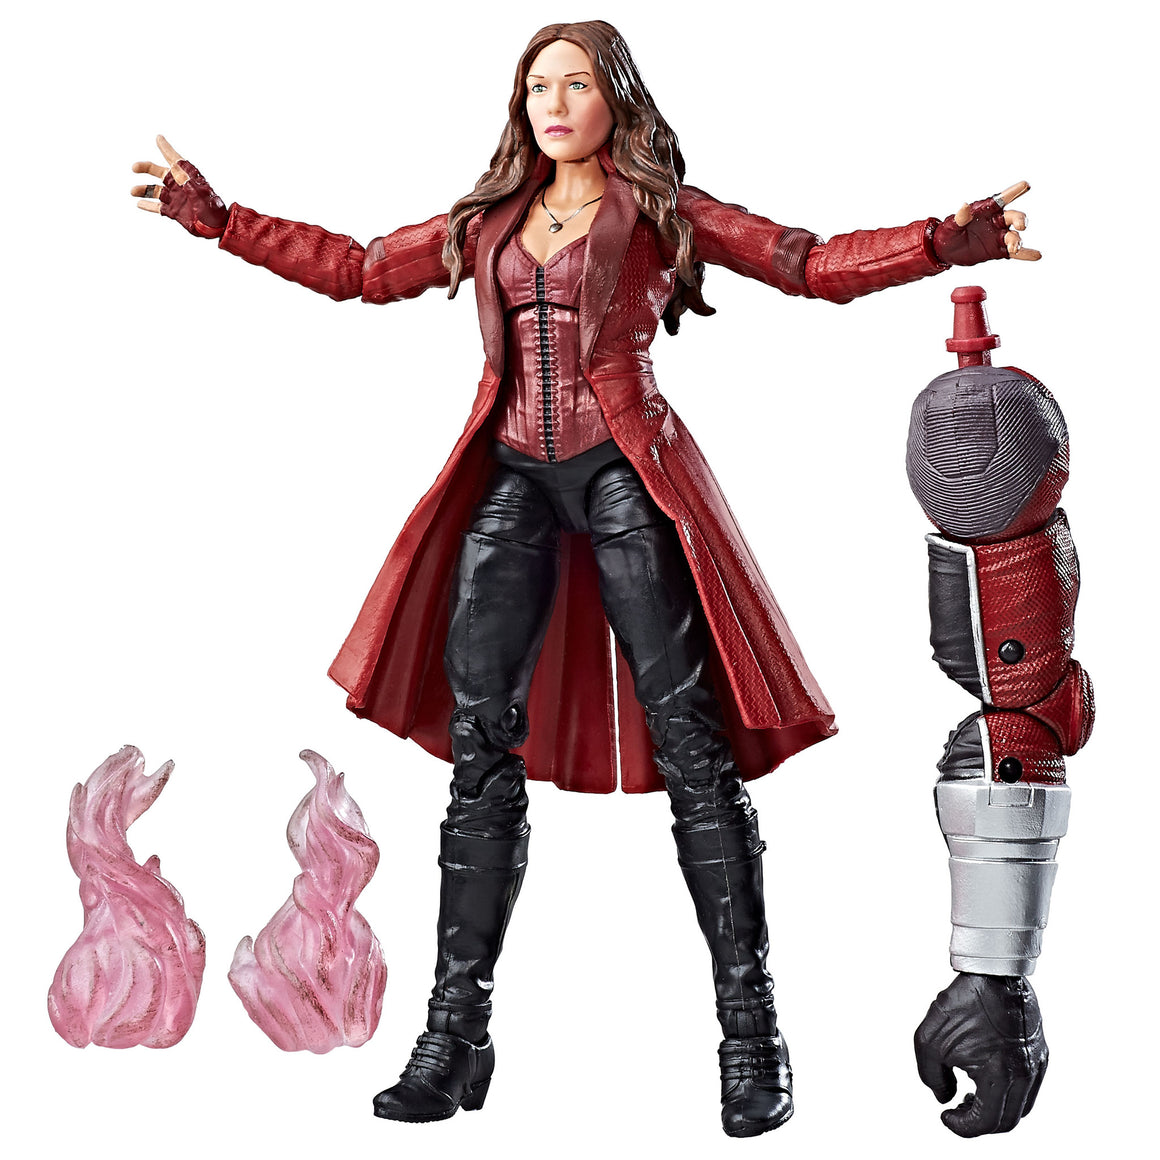 Marvel Legend Captain America Civil War: Scarlet Witch Figure by Hasbro